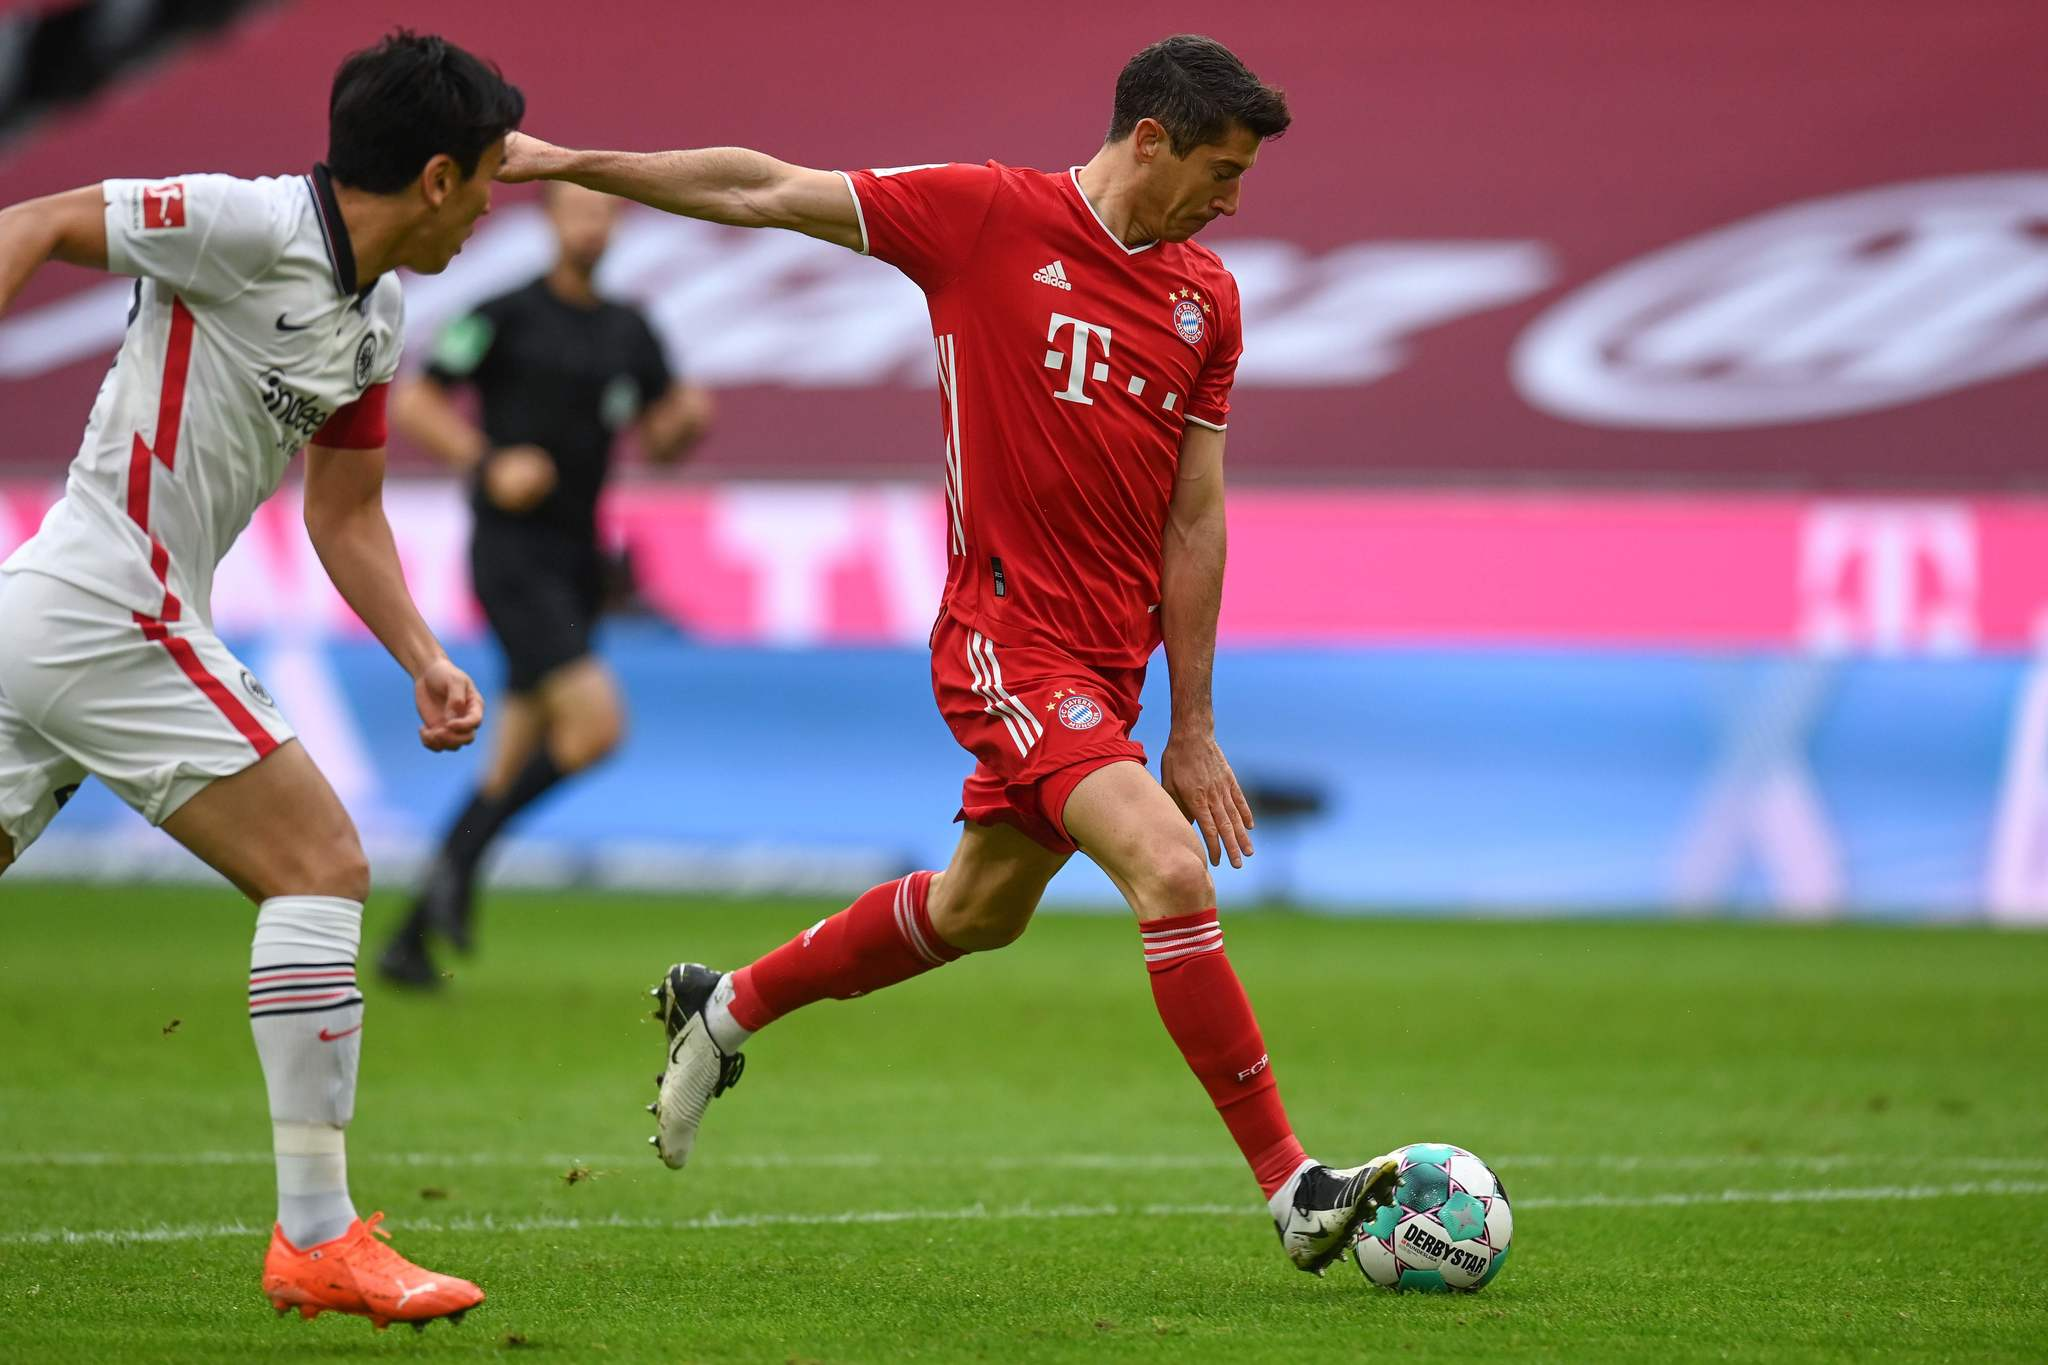 Bayern Munichs Polish forward Robert lt;HIT gt;Lewandowski lt;/HIT gt; scores the opening goal during the German first division Bundesliga football match between FC Bayern Munich and Eintracht Frankfurt on October 24, 2020 in Munich, southern Germany. (Photo by CHRISTOF STACHE / various sources / AFP) / DFL REGULATIONS PROHIBIT ANY USE OF PHOTOGRAPHS AS IMAGE SEQUENCES AND/OR QUASI-VIDEO